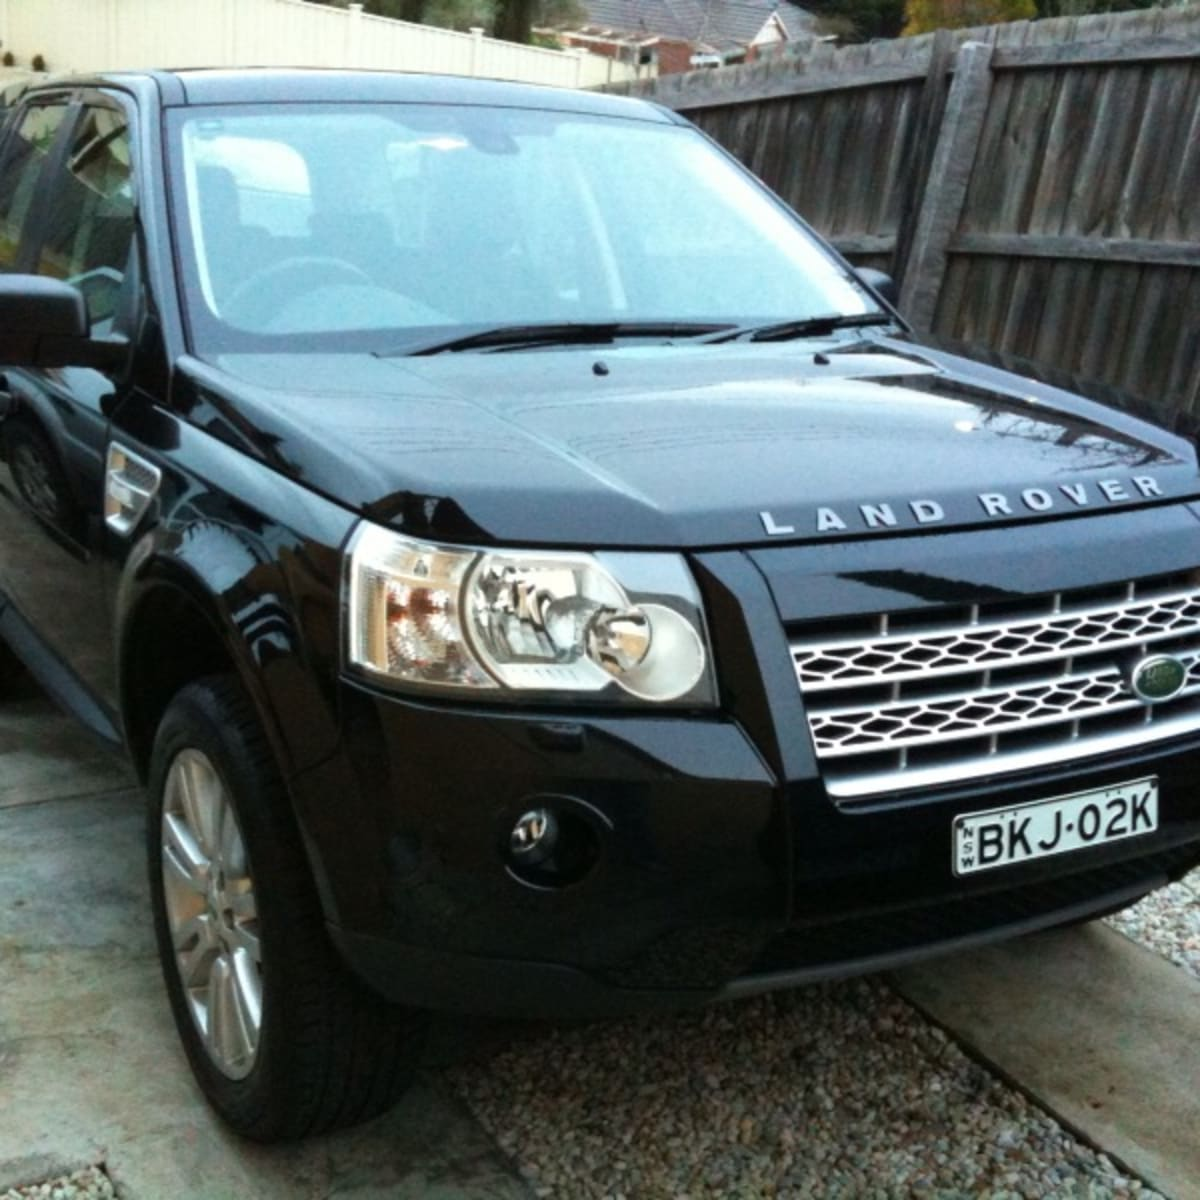 Land Rover Freelander 2 Review & Road Test | CarAdvice